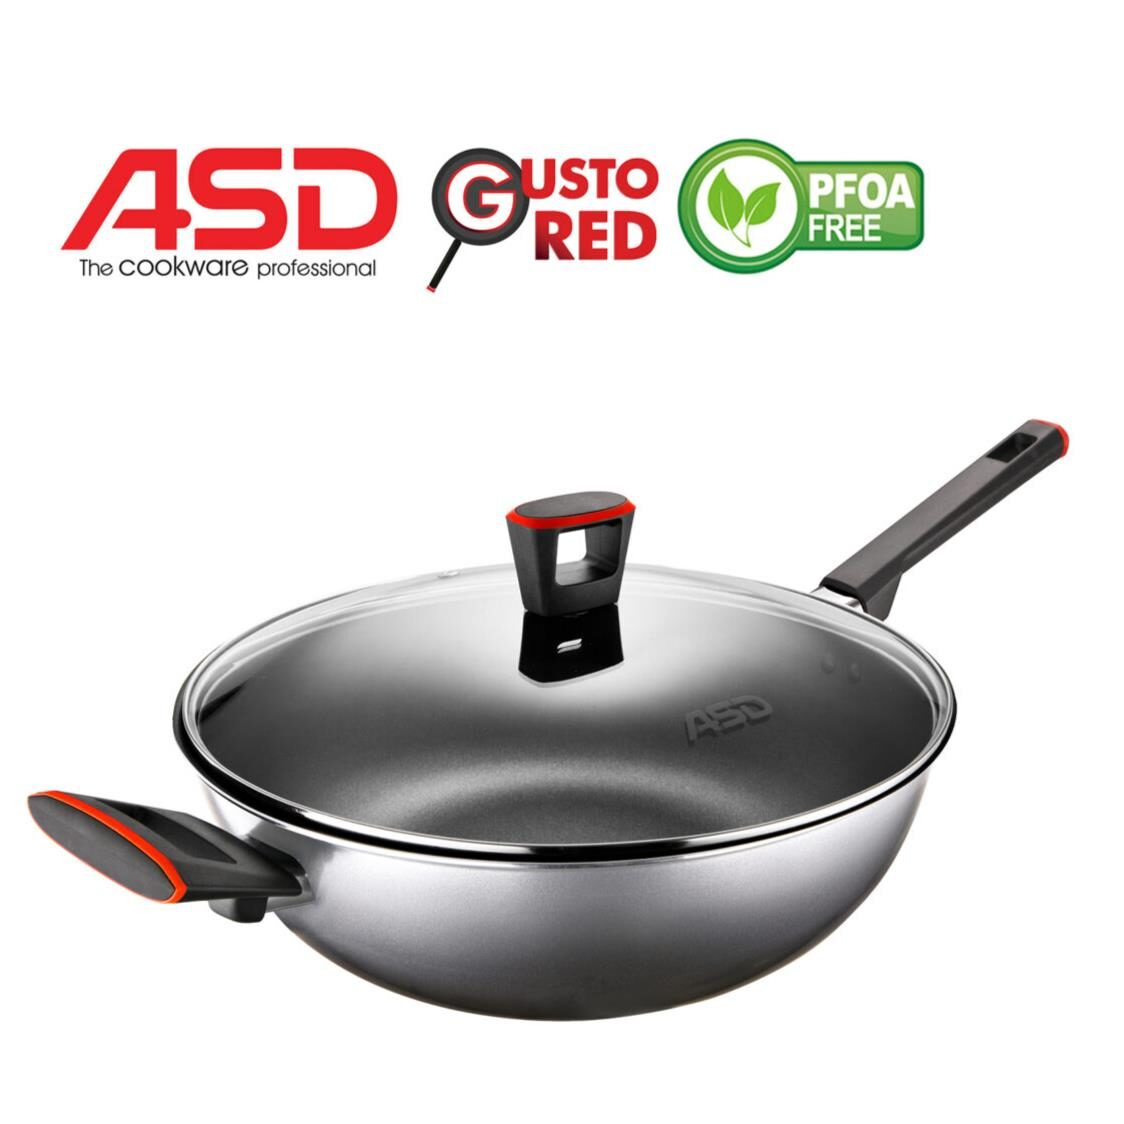 ASD Gusto Red 32cm Non-stick Skillet Wok With Glass Lid